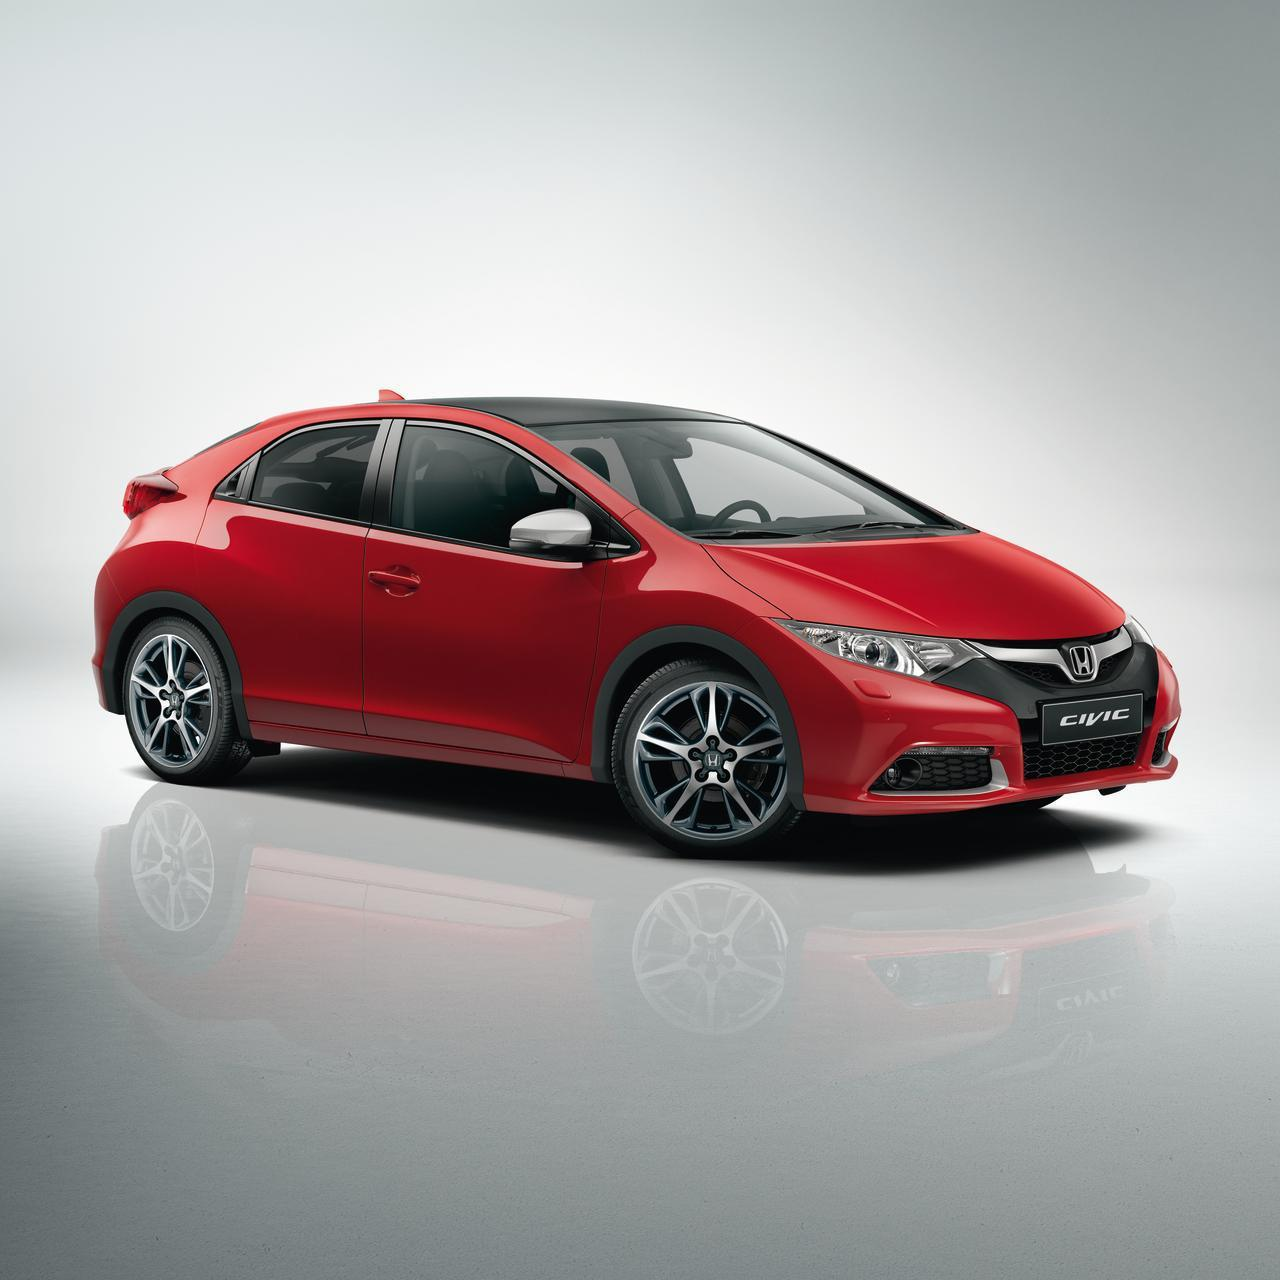 Foto de Honda Civic 2012 (97/153)